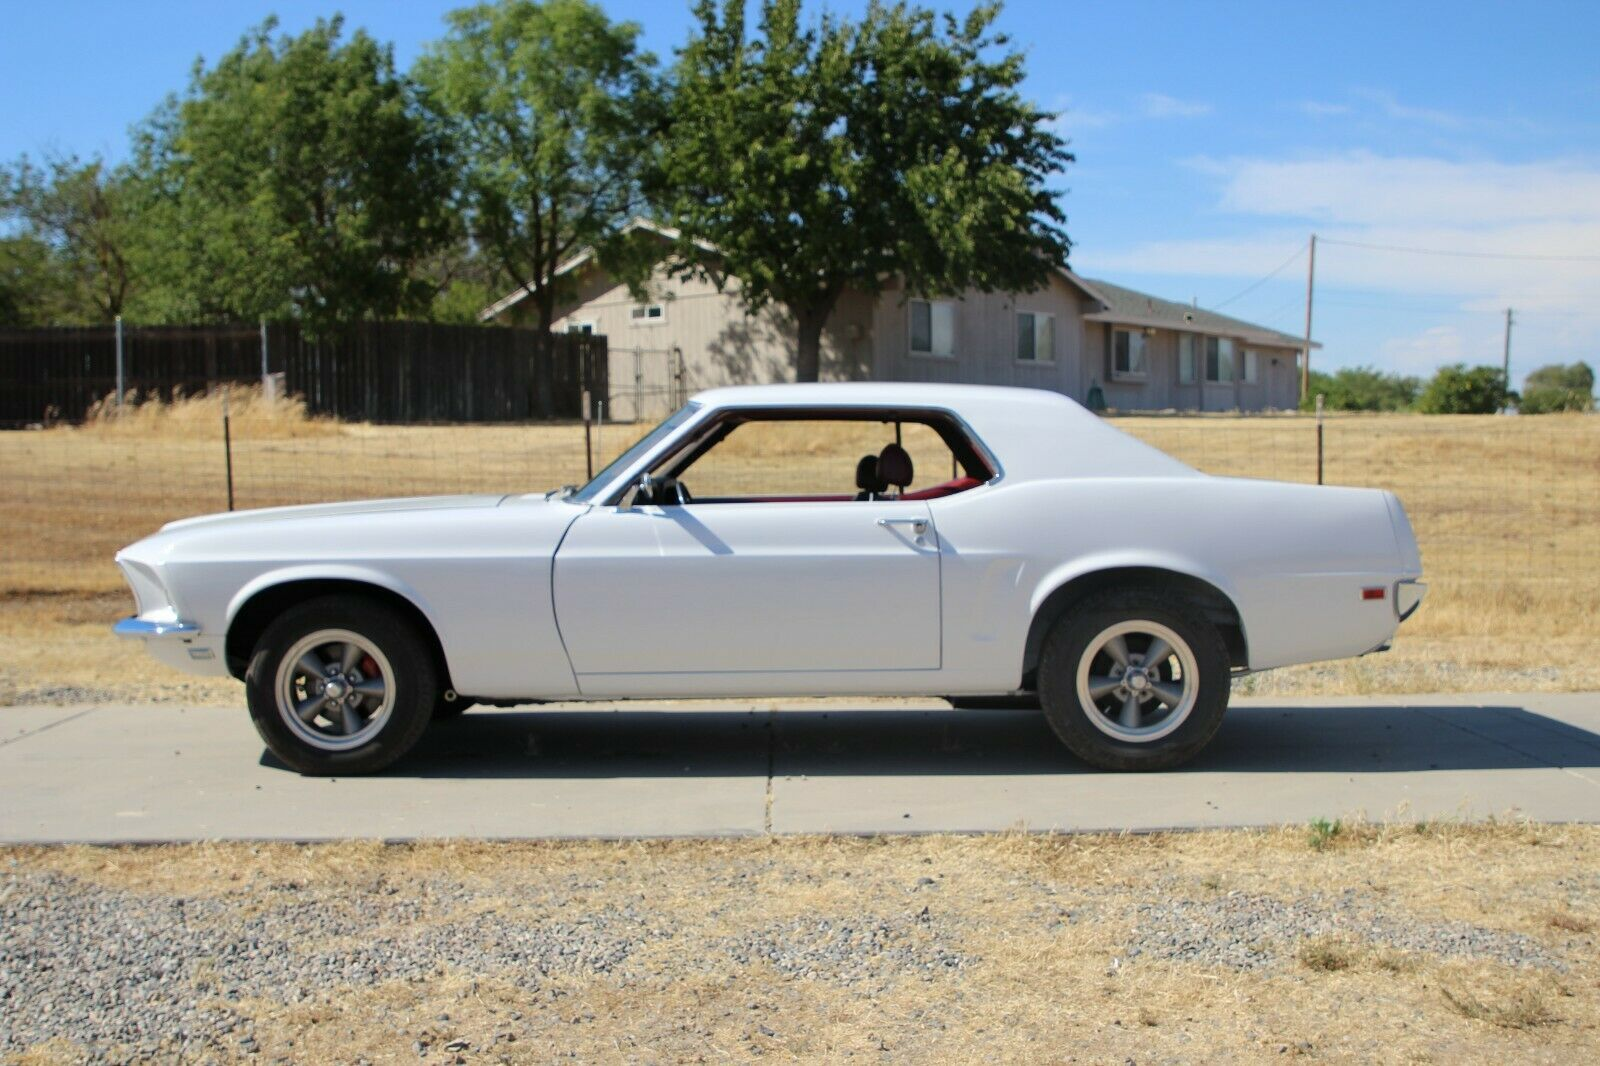 1969 ford mustang fresh restoration restomod clean no rust daily driver